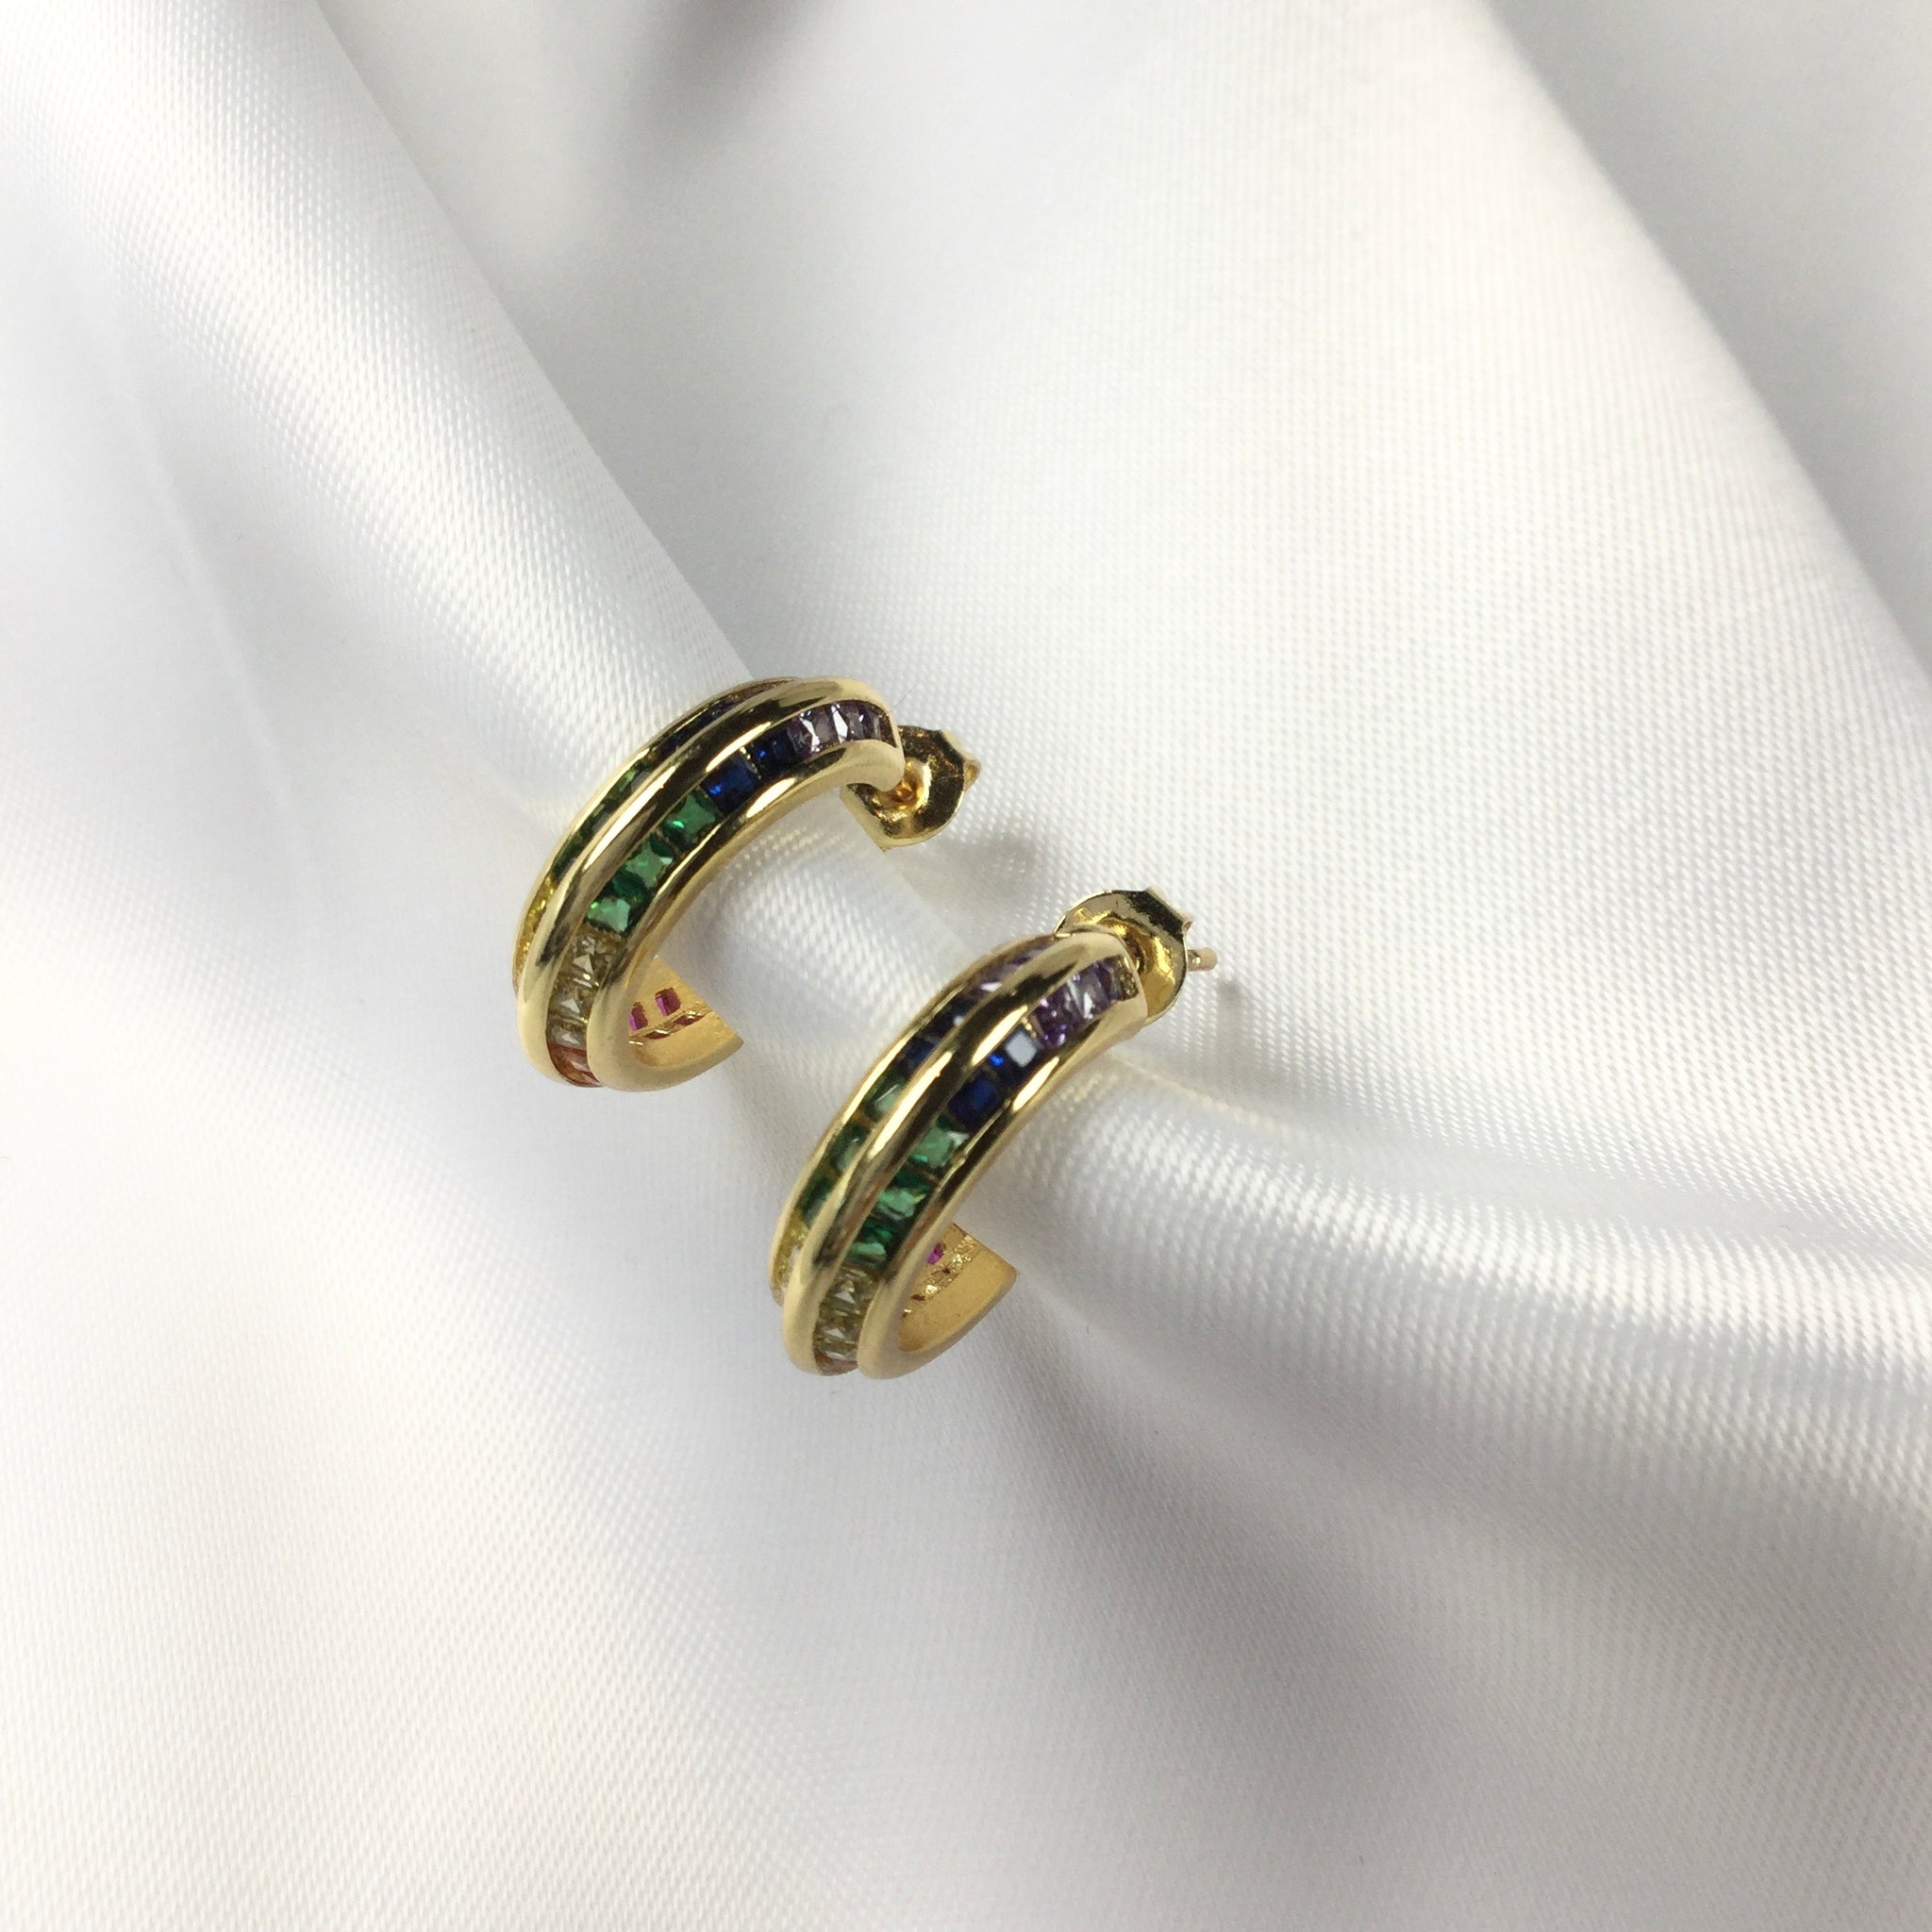 Fancy Colorful Hoop Earrings 18k Gold Plated